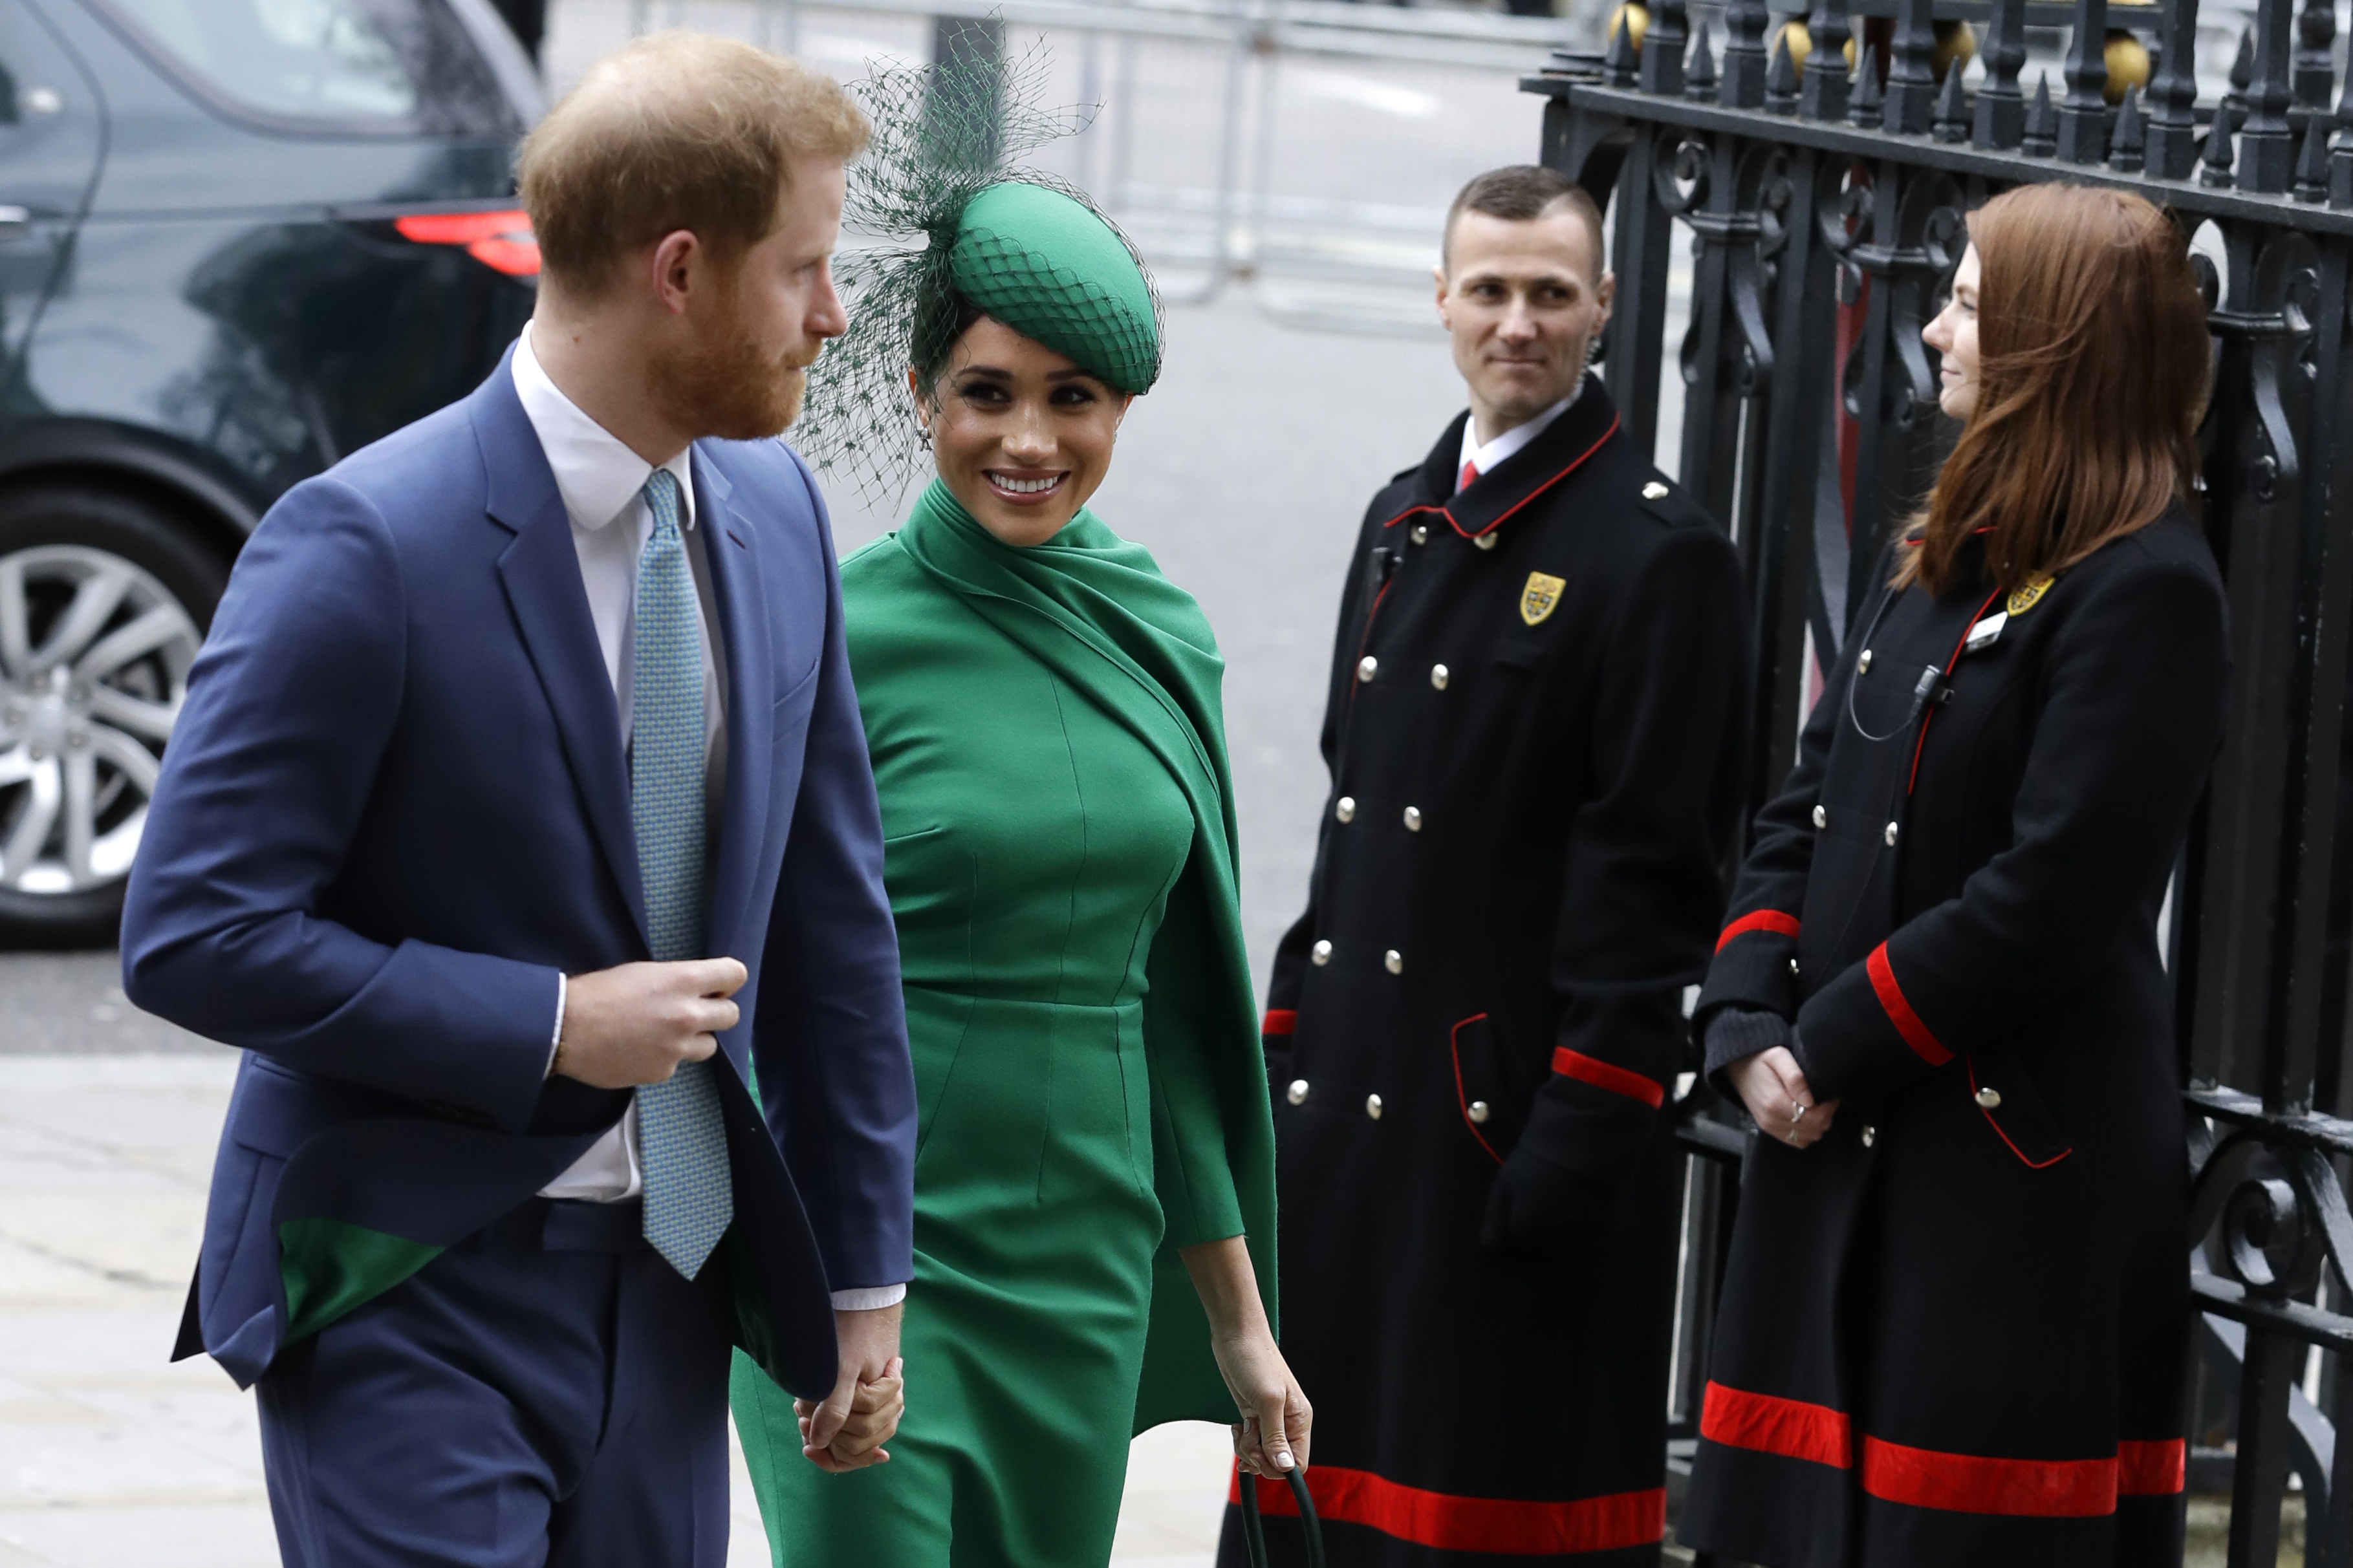 Britain's Harry and Meghan the Duke and Duchess of Sussex arrive to attend the annual Commonwealth Day service at Westminster Abbey in London on March 9, 2020.